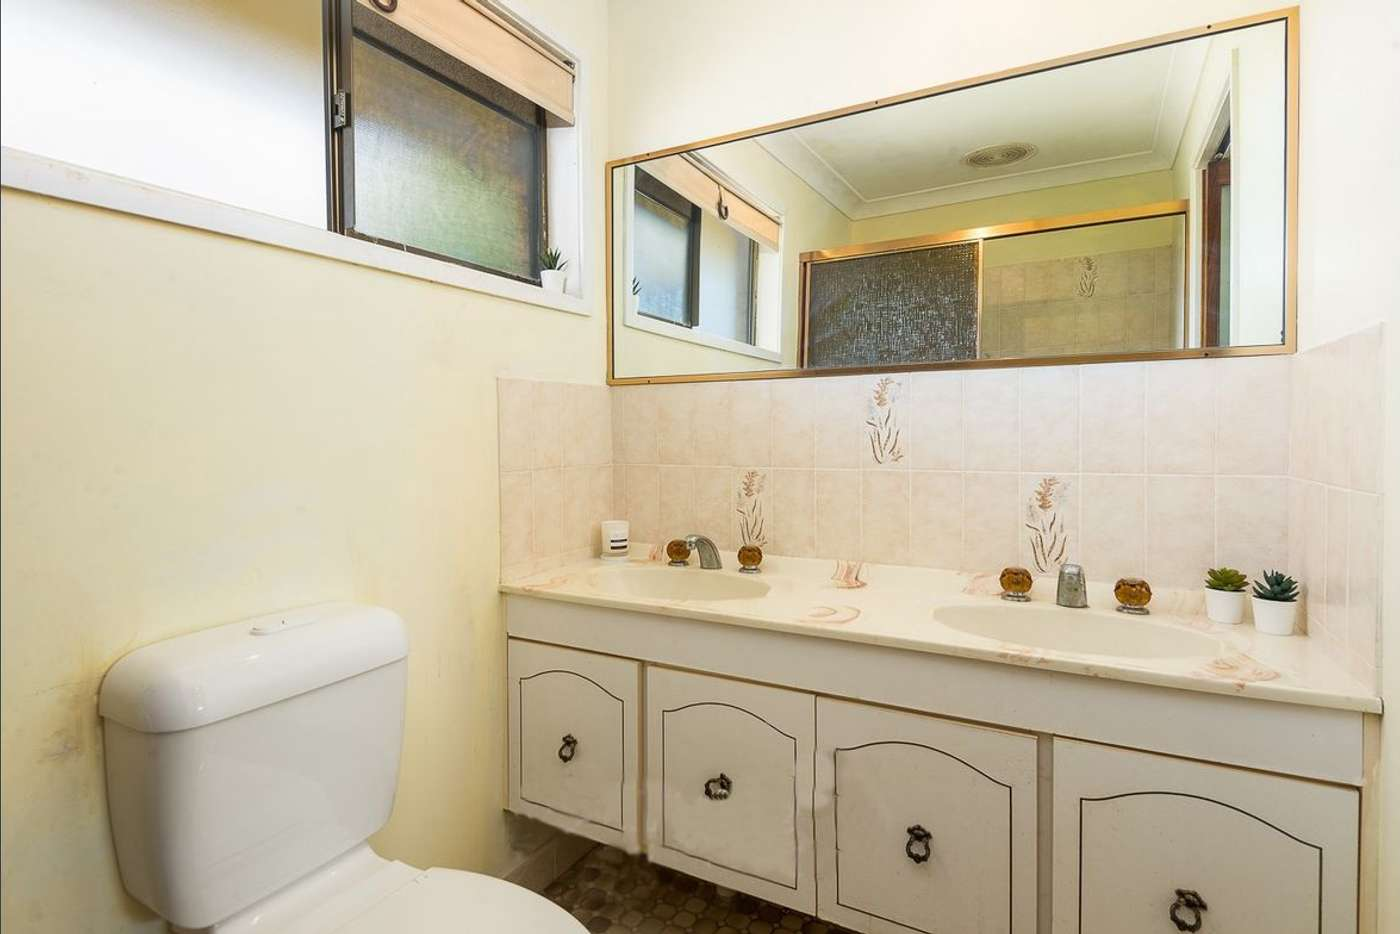 Seventh view of Homely house listing, 59 Begonia Street, Browns Plains QLD 4118